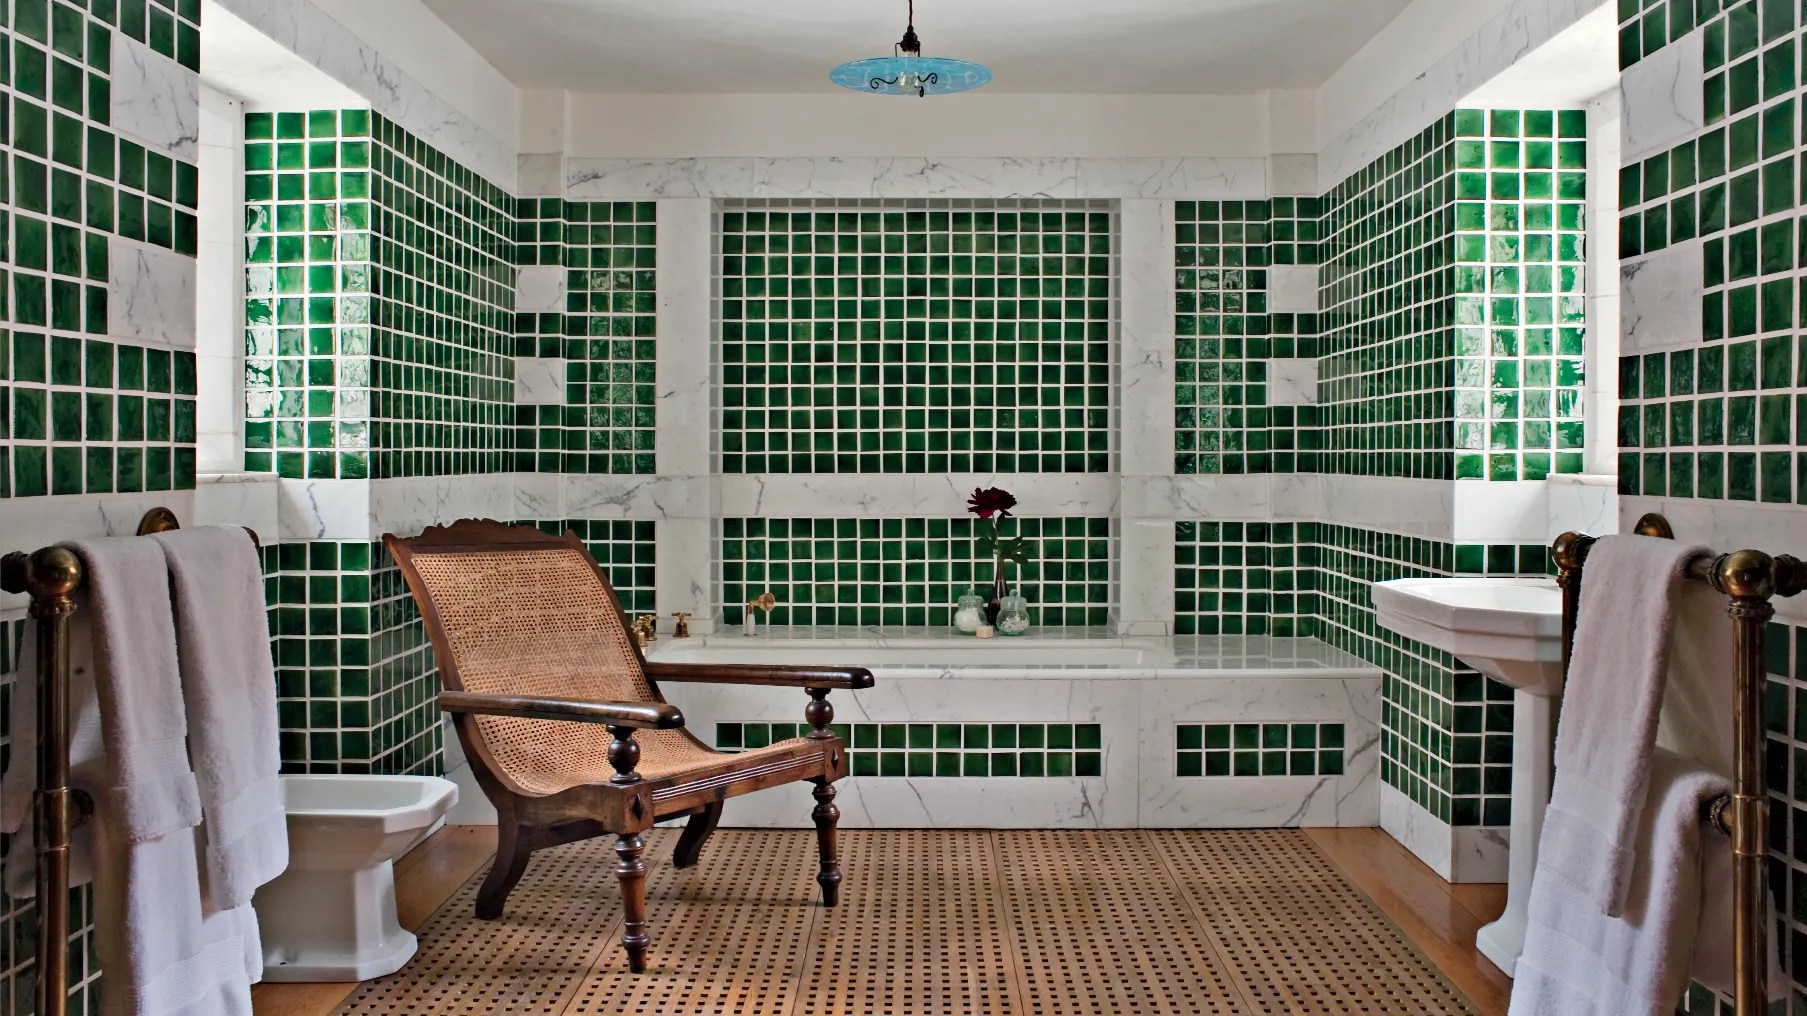 14 times beautiful tiles appear in the